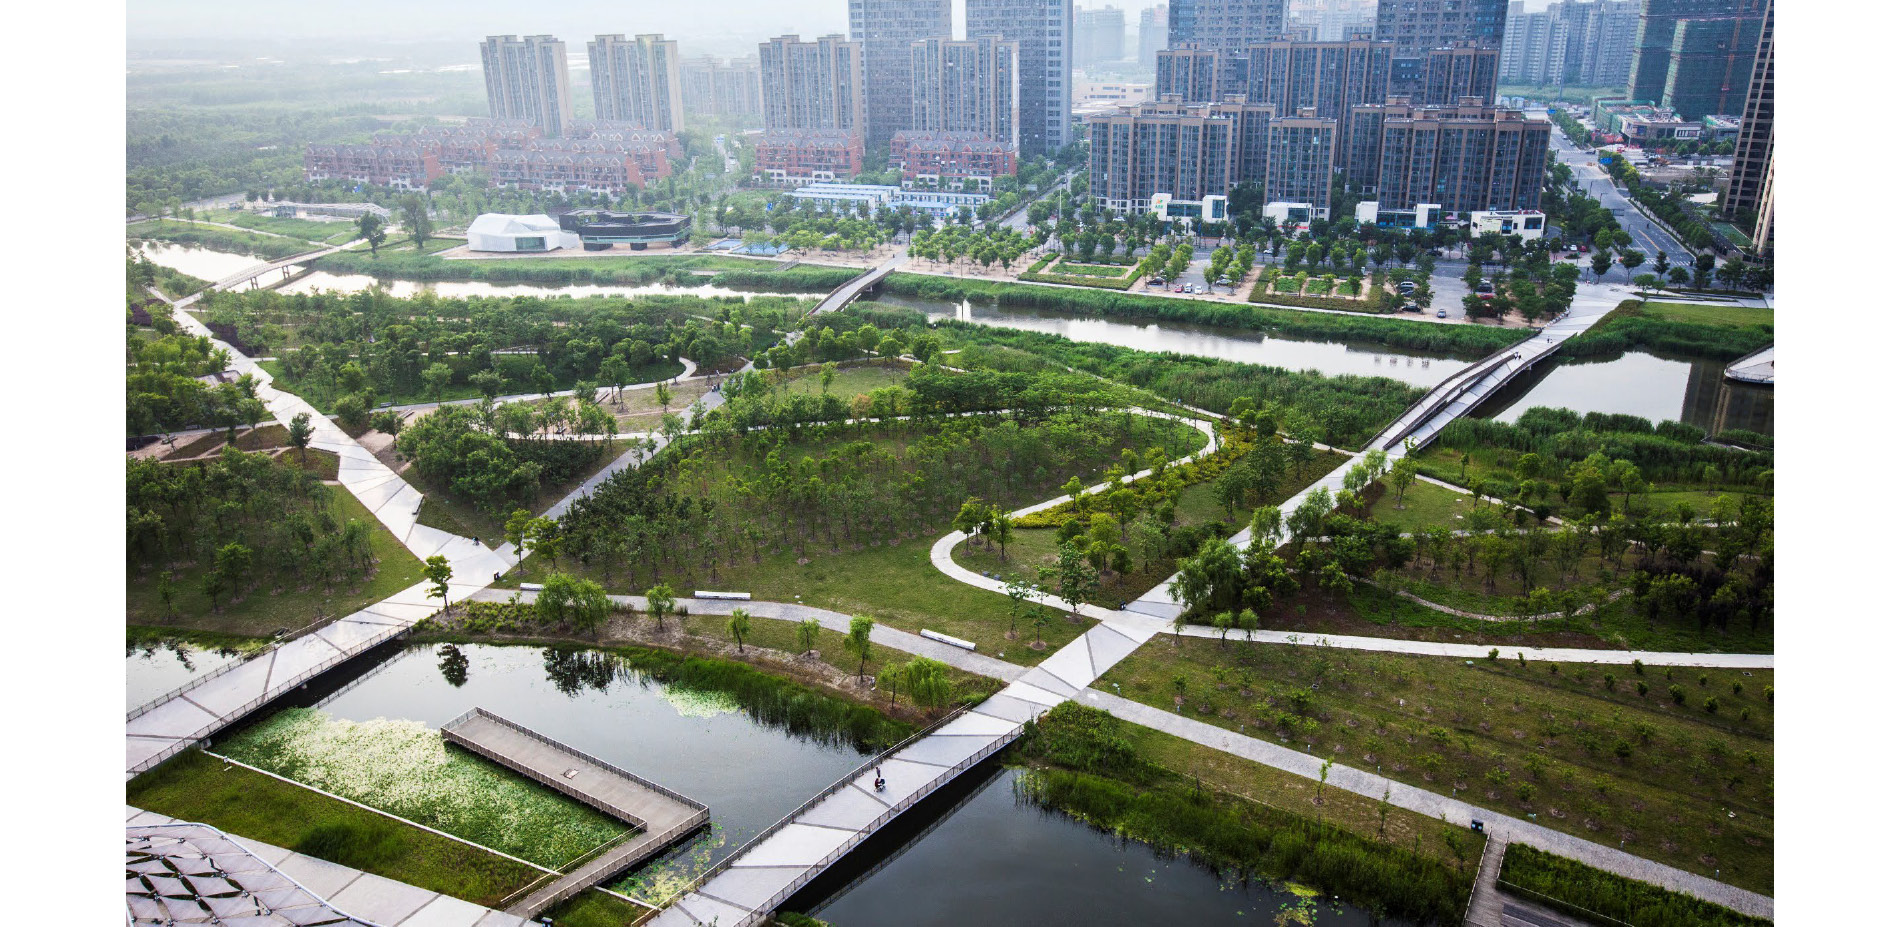 LANDSCAPE AS THE VALUE PROPOSITION FOR A NEW URBAN DISTRICT